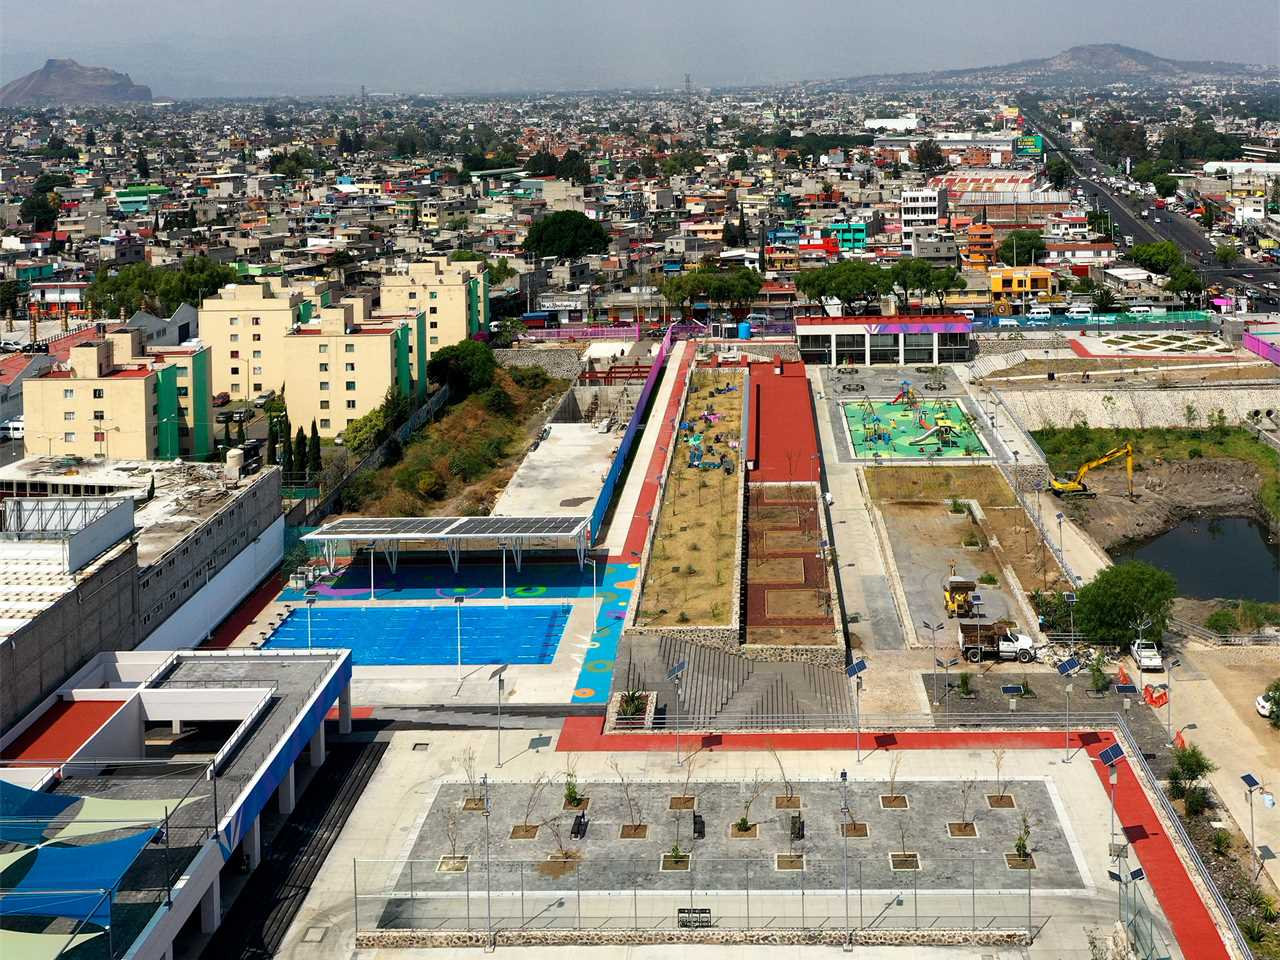 Project update June 2020 – Hydropuncture in Mexico